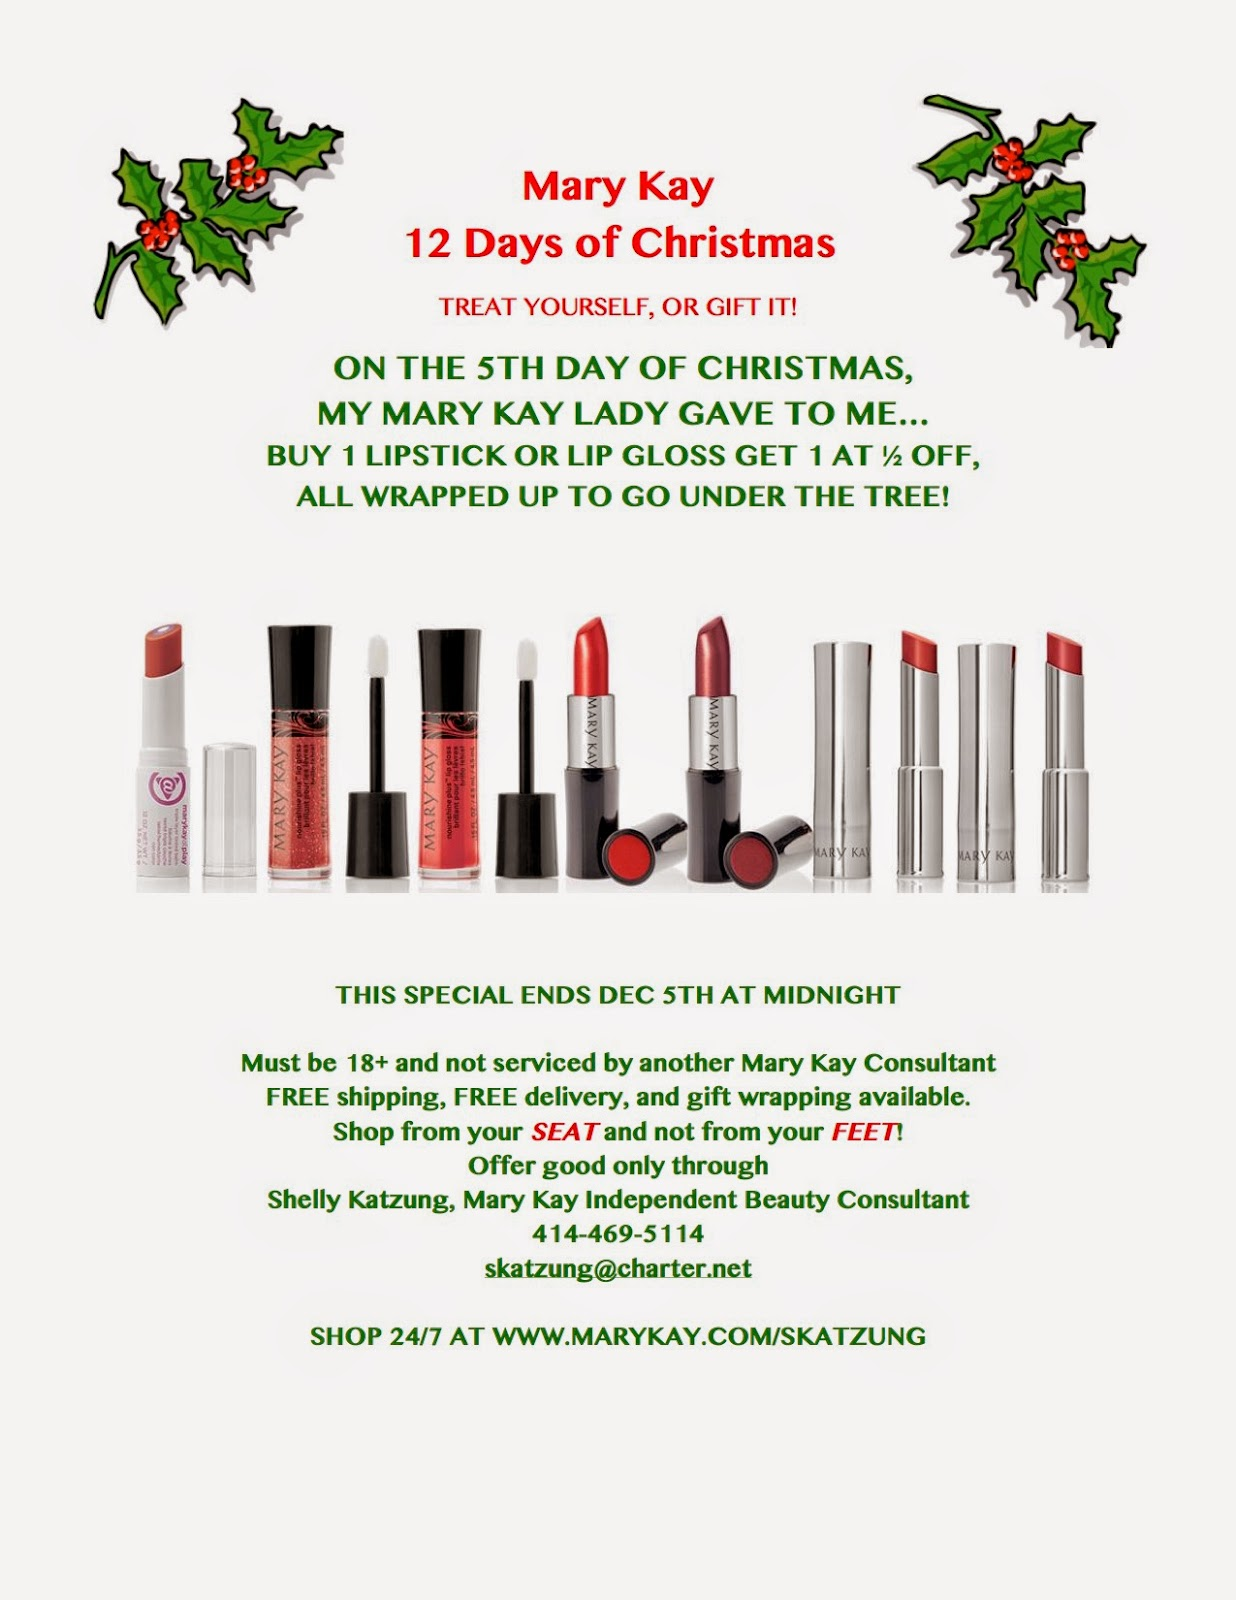 accentuate n ink mary kay 12 days of christmas 5